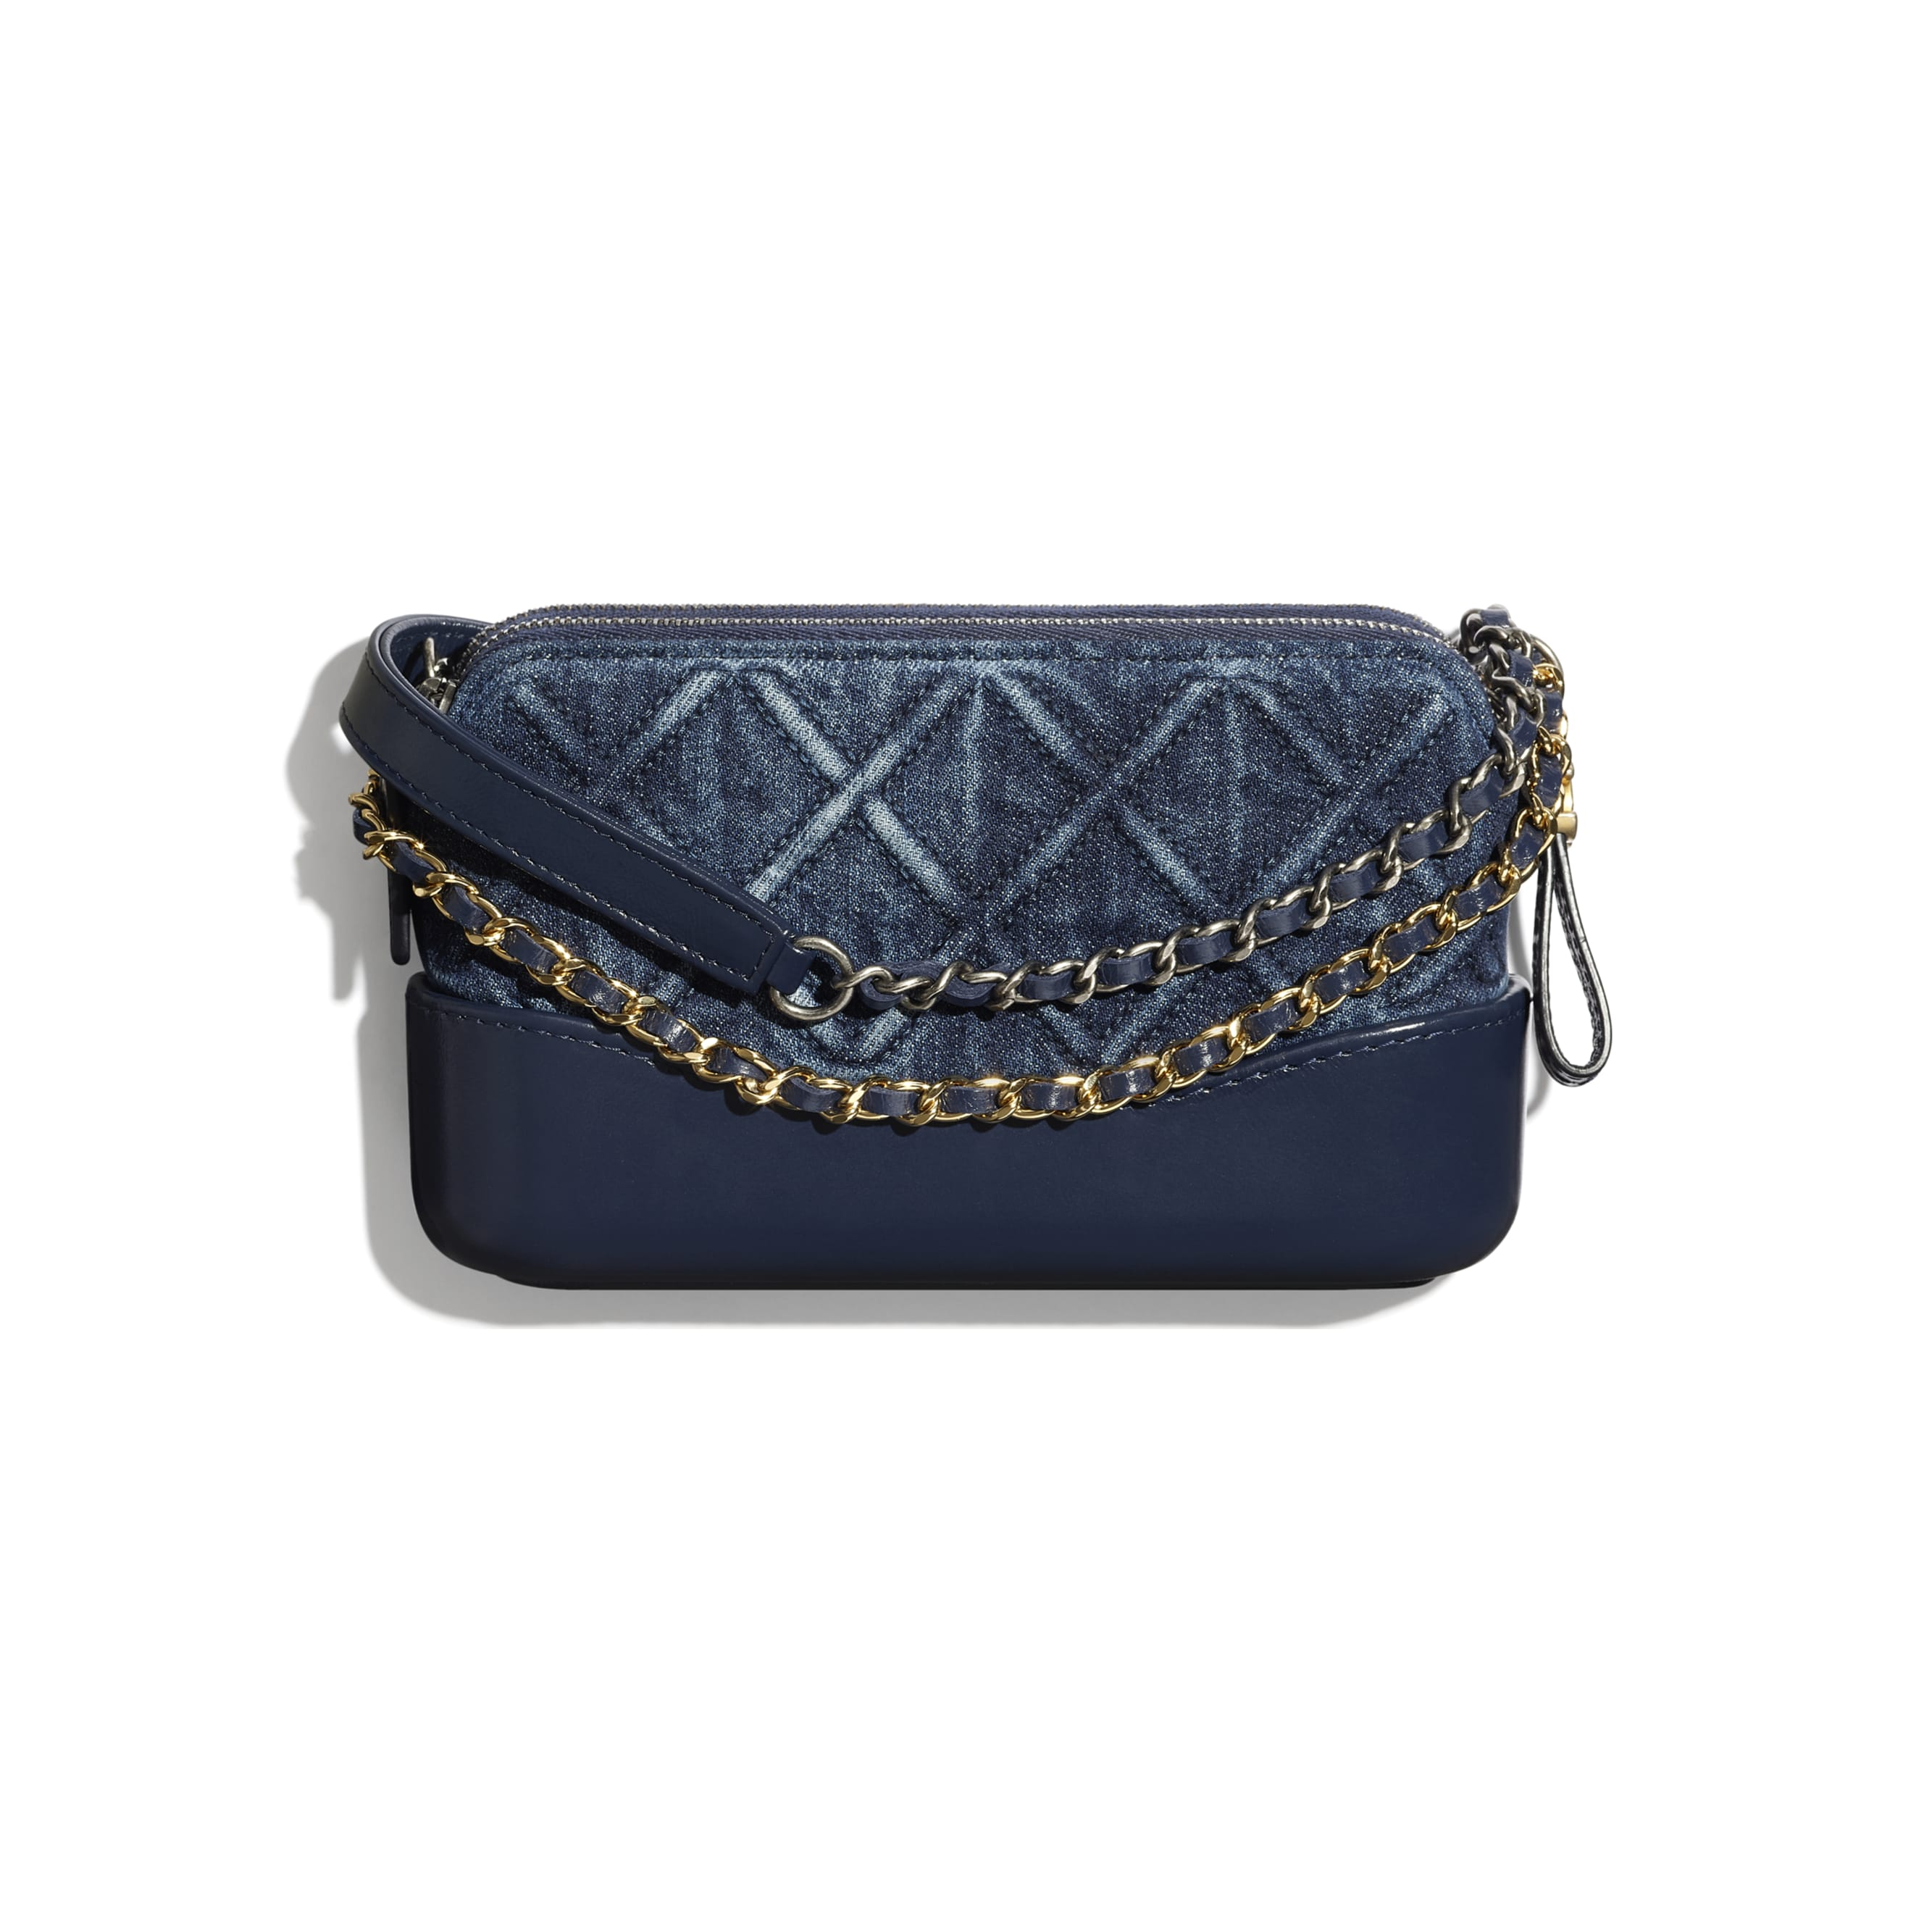 Clutch With Chain - Blue - Denim, Calfskin, Gold-Tone, Silver-Tone & Ruthenium-Finish Metal - CHANEL - Alternative view - see standard sized version